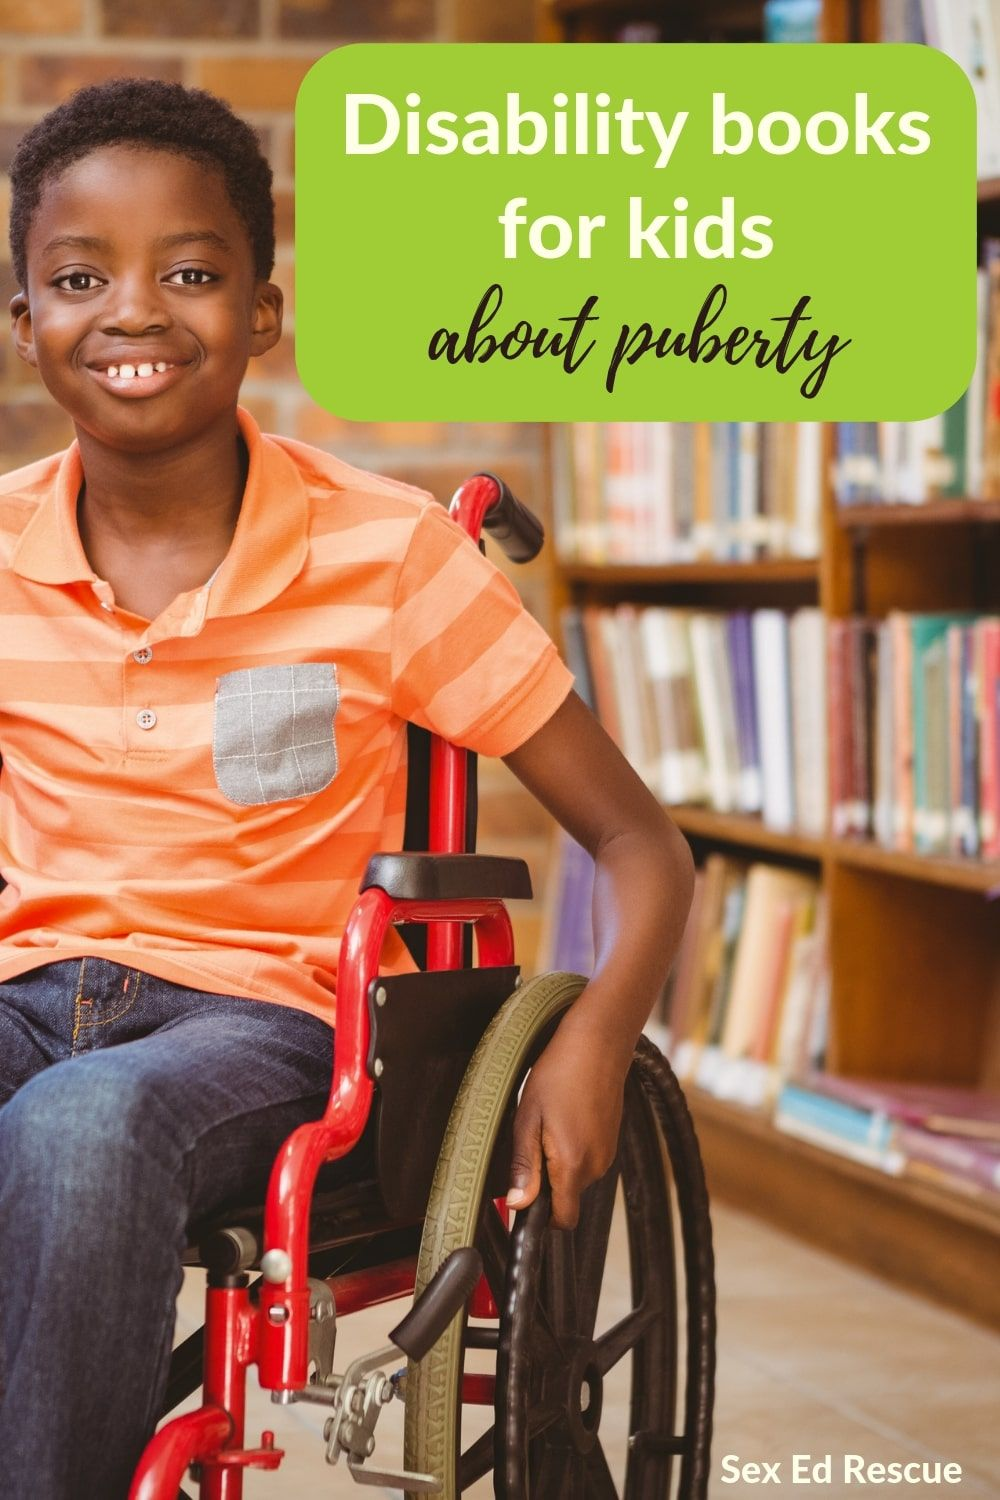 The best puberty books for kids with a disability